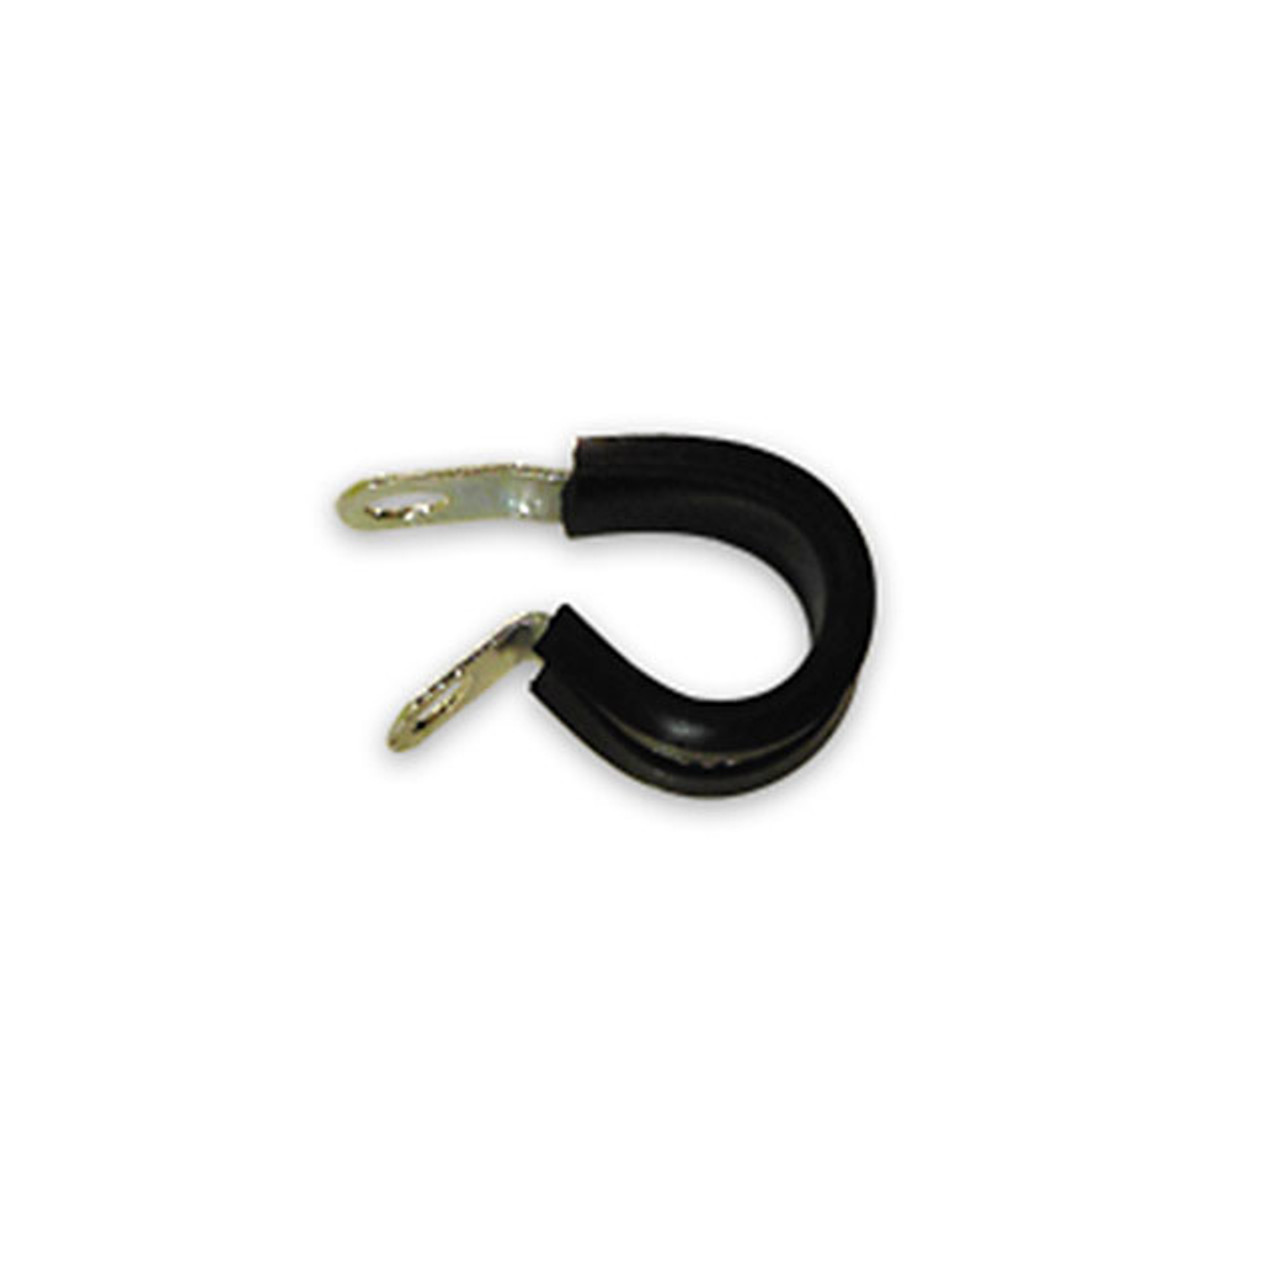 CUSHION CABLE CLAMP 5/8""